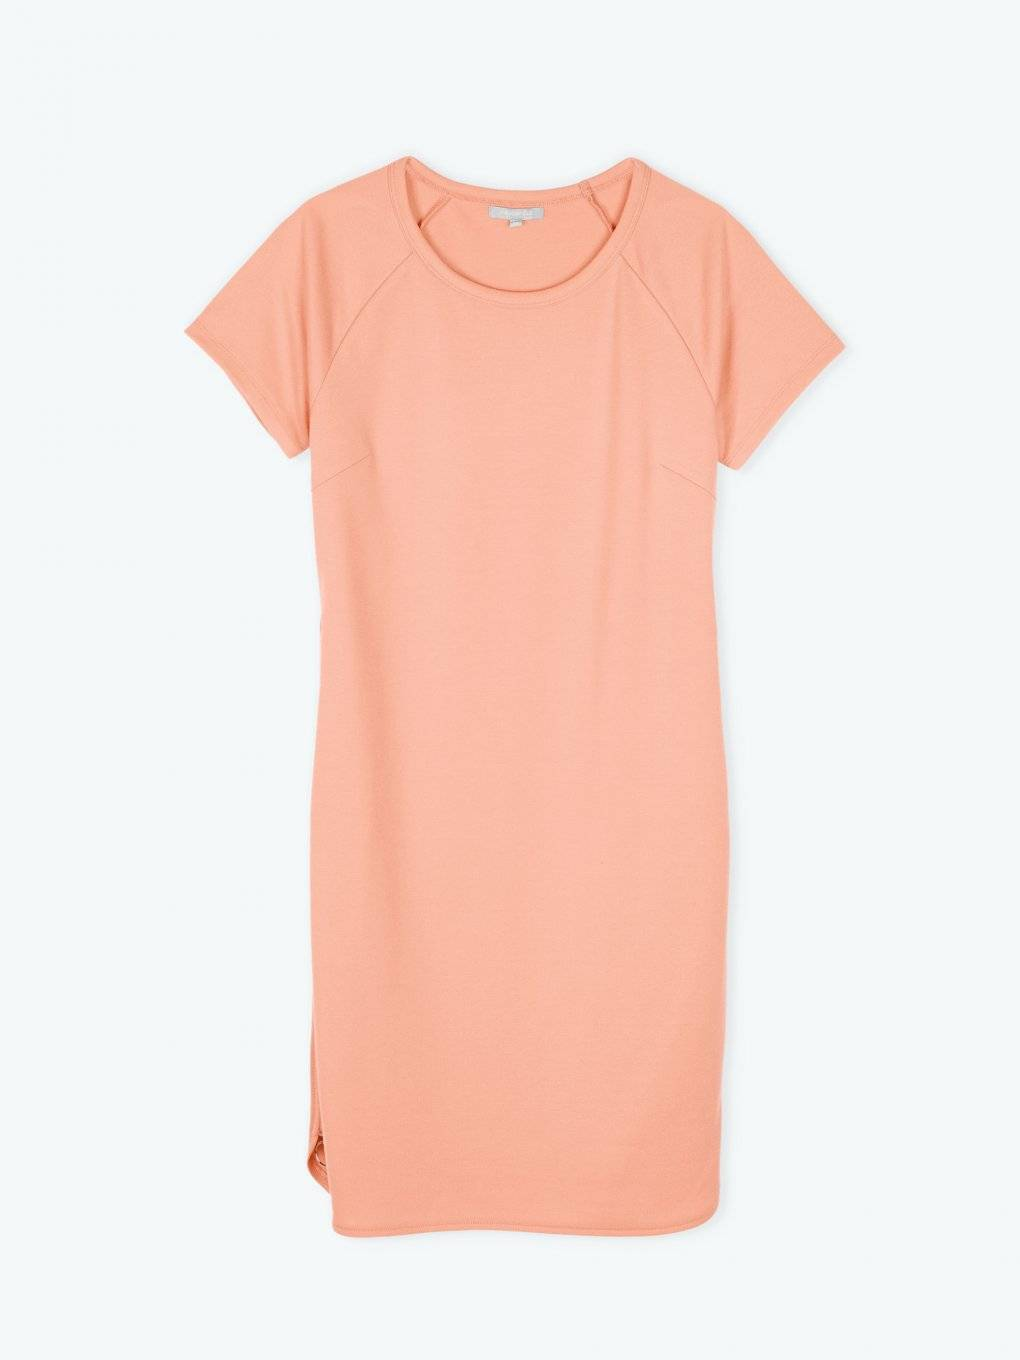 T-shirt dress with side zippers